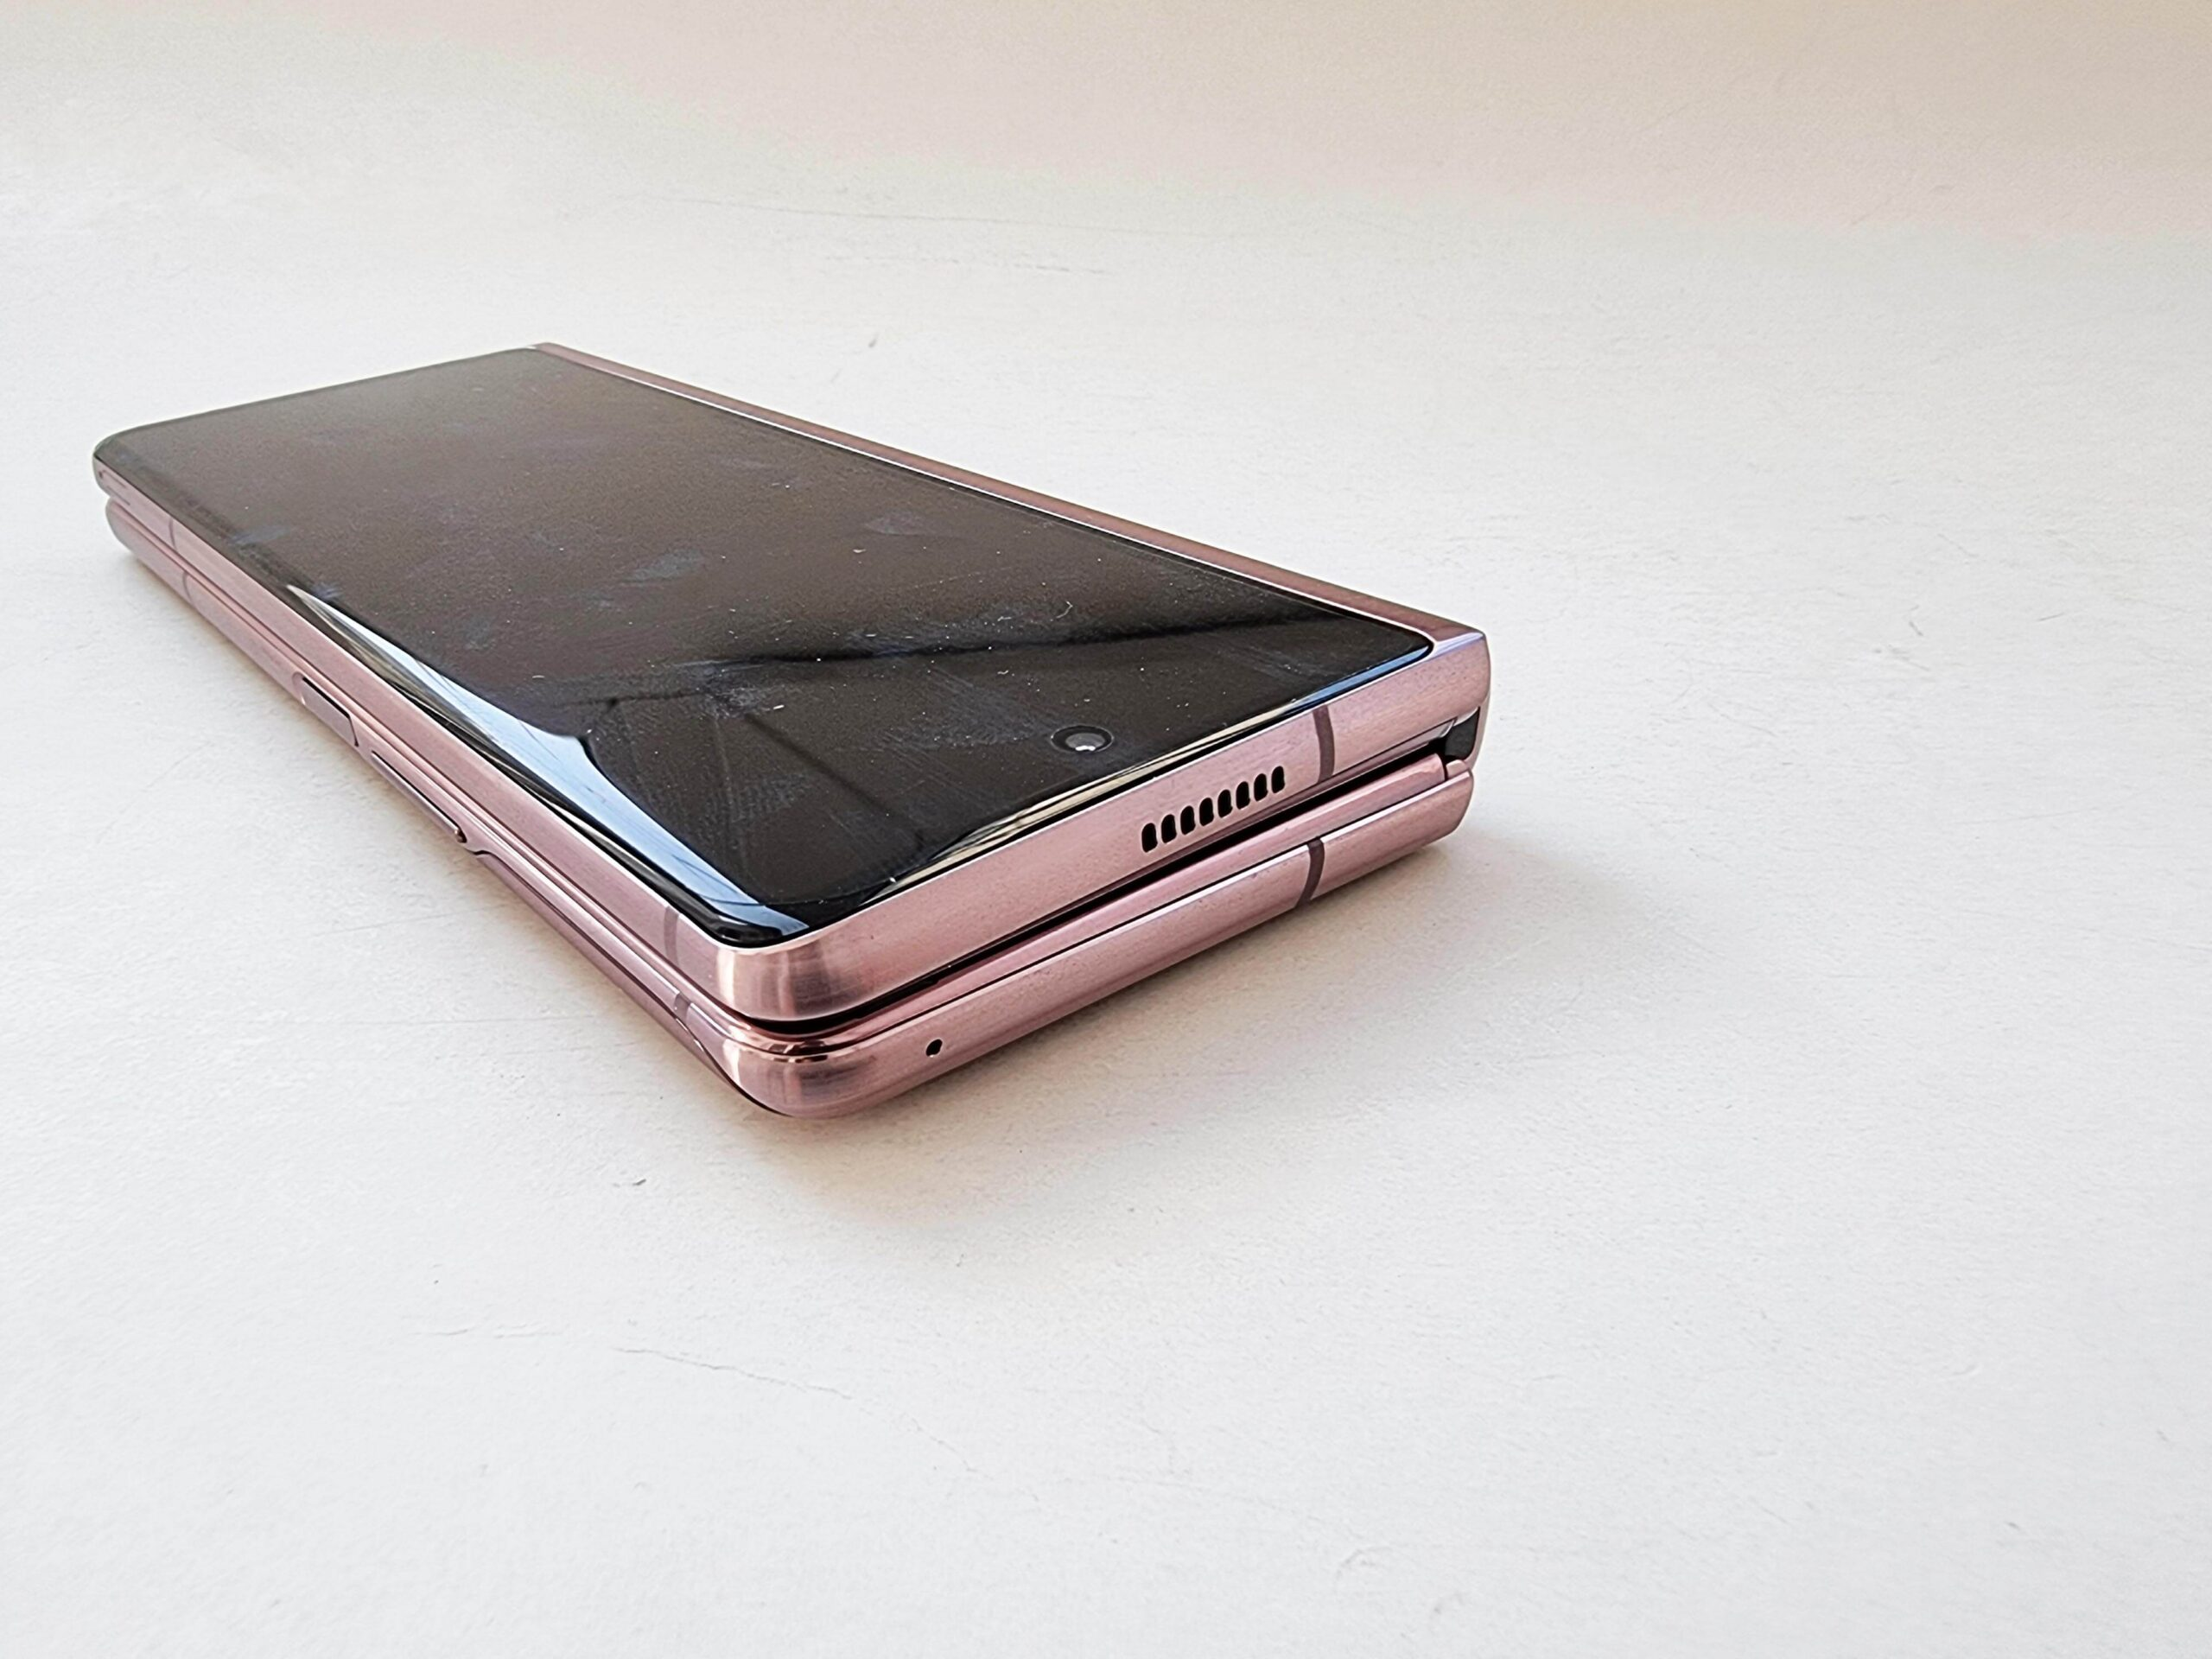 Samsung Galaxy Z Fold2 Review Romana si Pareri - 3